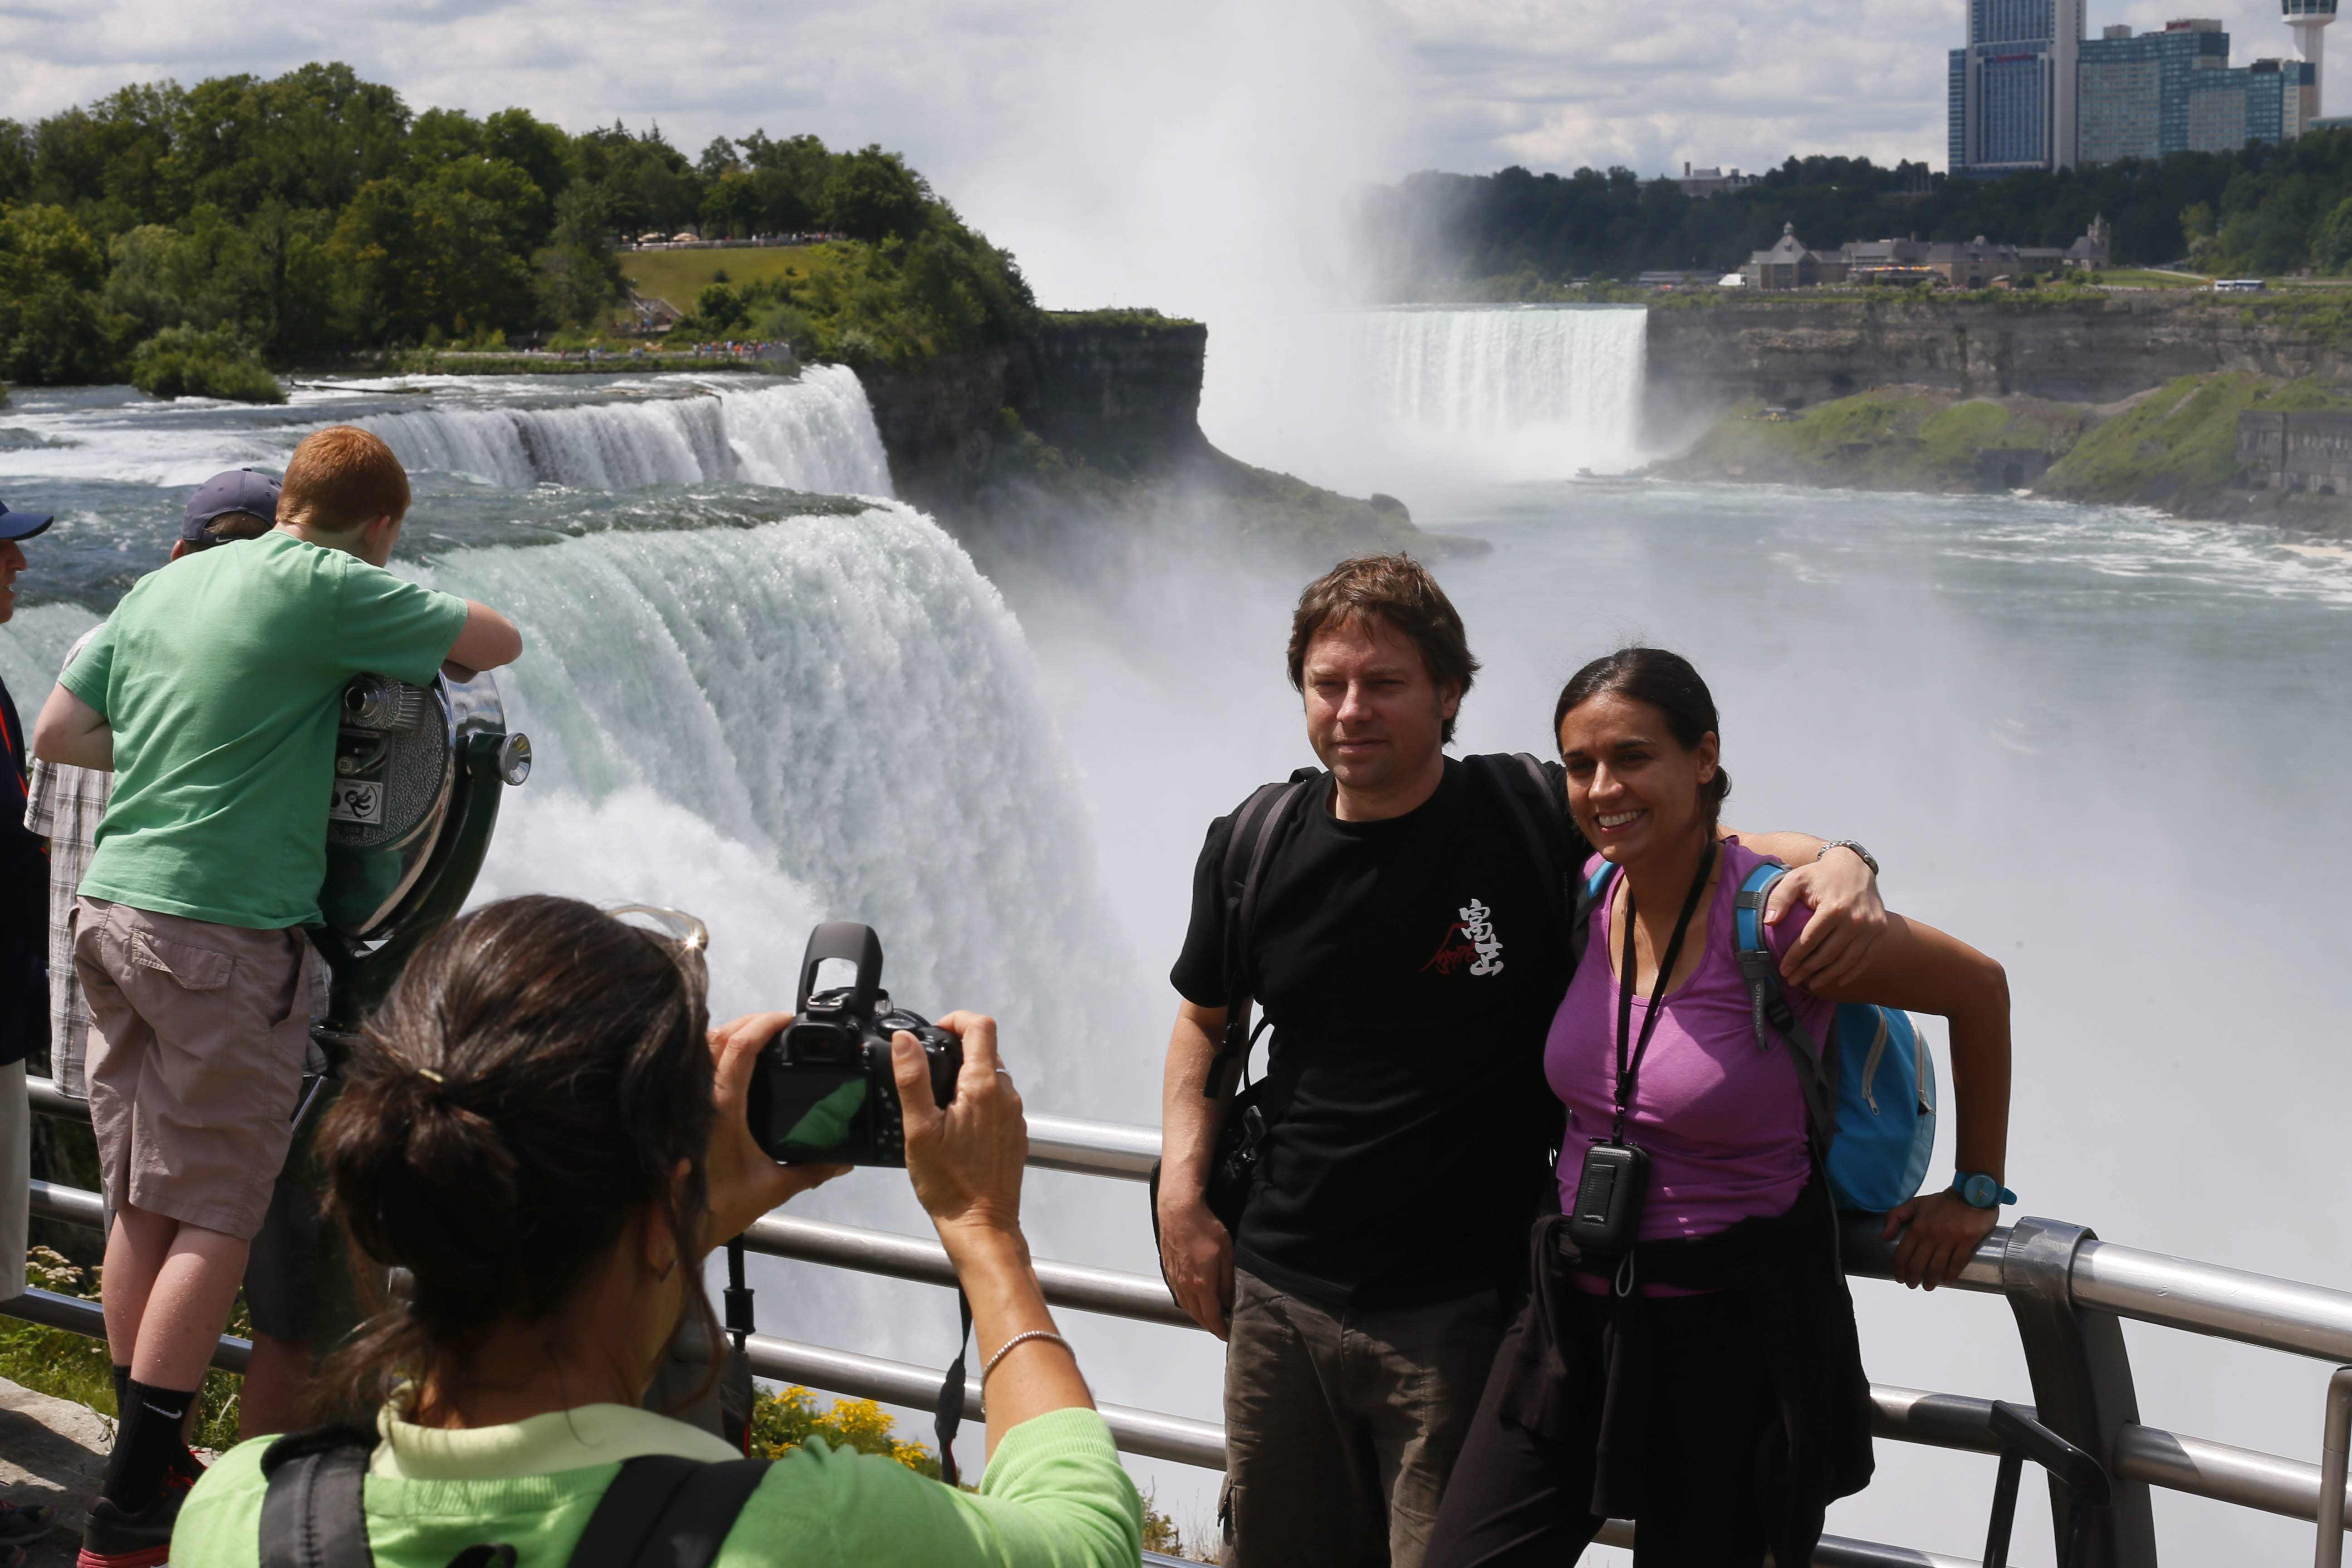 Jacobo Cagigal and Silvia Juez of Santander, Spain, pose for a photo at Prospect Point in Niagara Falls State Park in July. Niagara Falls needs more tourists like Cagigal and Juez; if the city can't succeed at tourism, its economy will never be more than anemic.